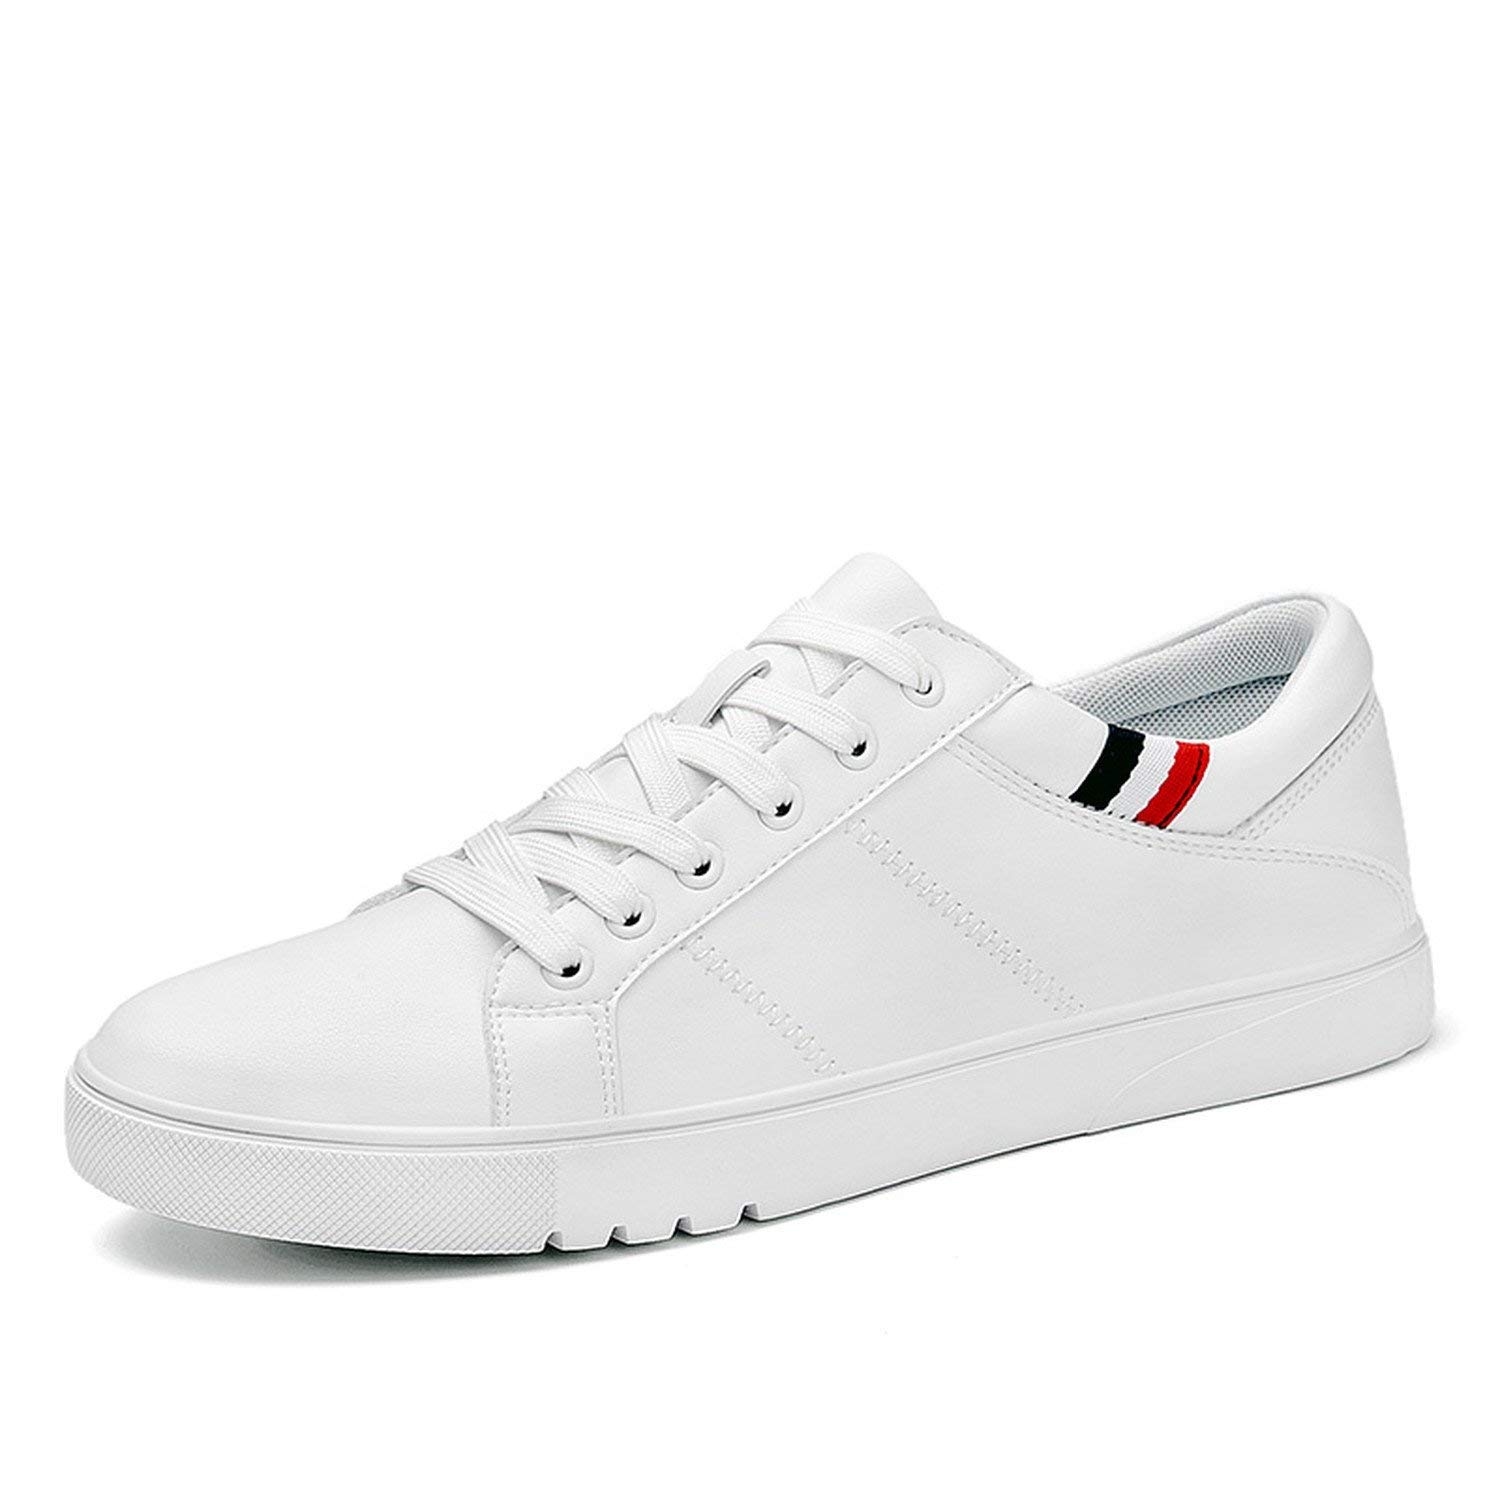 new product ec413 2a090 Get Quotations · Engineeringed Classics Skateboarding Shoes Men Luxury  Brand Sneakers Soft Breathable Lace up Sport Shoes